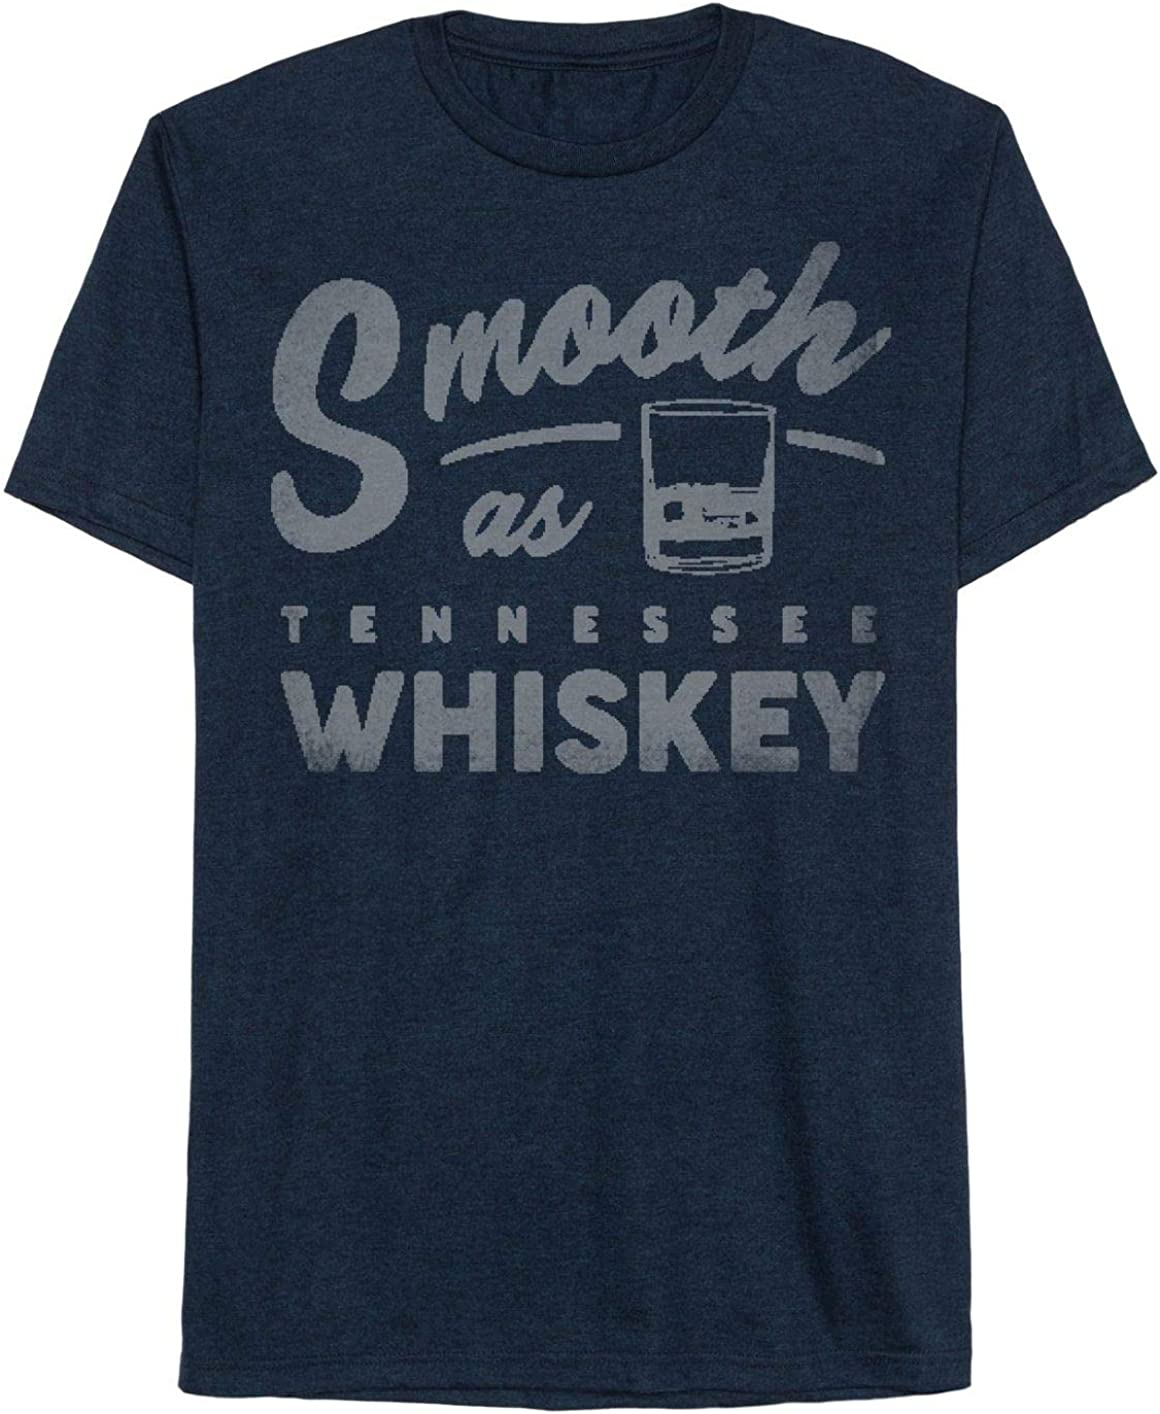 Sonoma Mens S-2XL Smooth Whiskey Graphic Tee